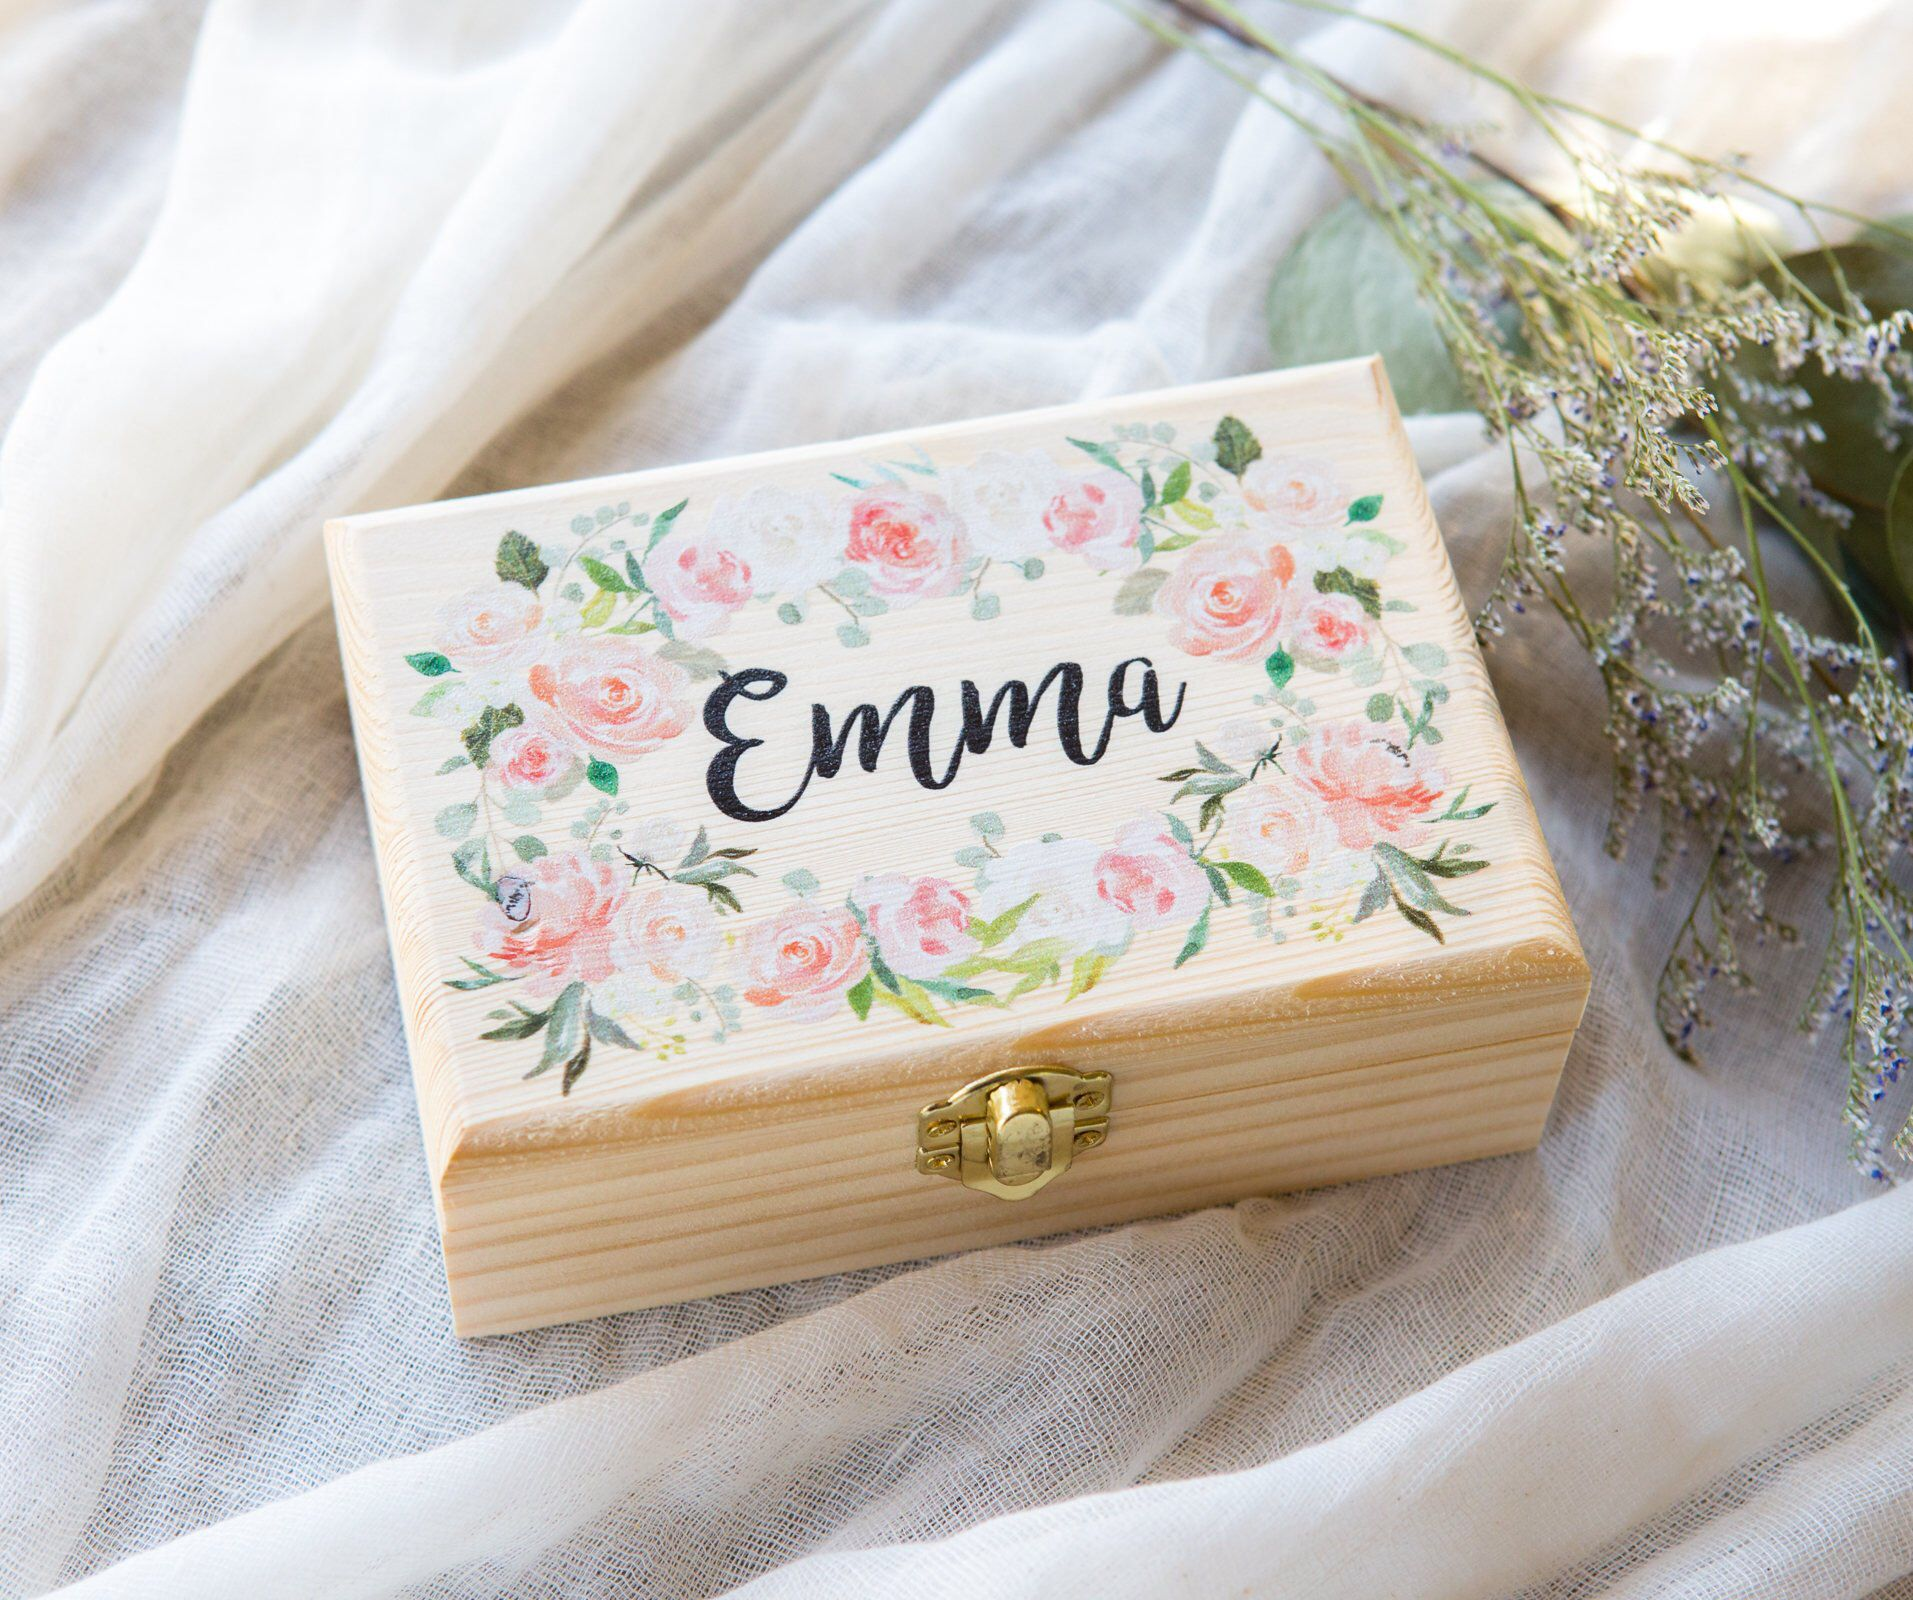 Engraved Polished Oval Shaped Box Bridesmaid Jewelry Box Personalize Flower Girl Birthday Gift for Her Free Engraving  Gift